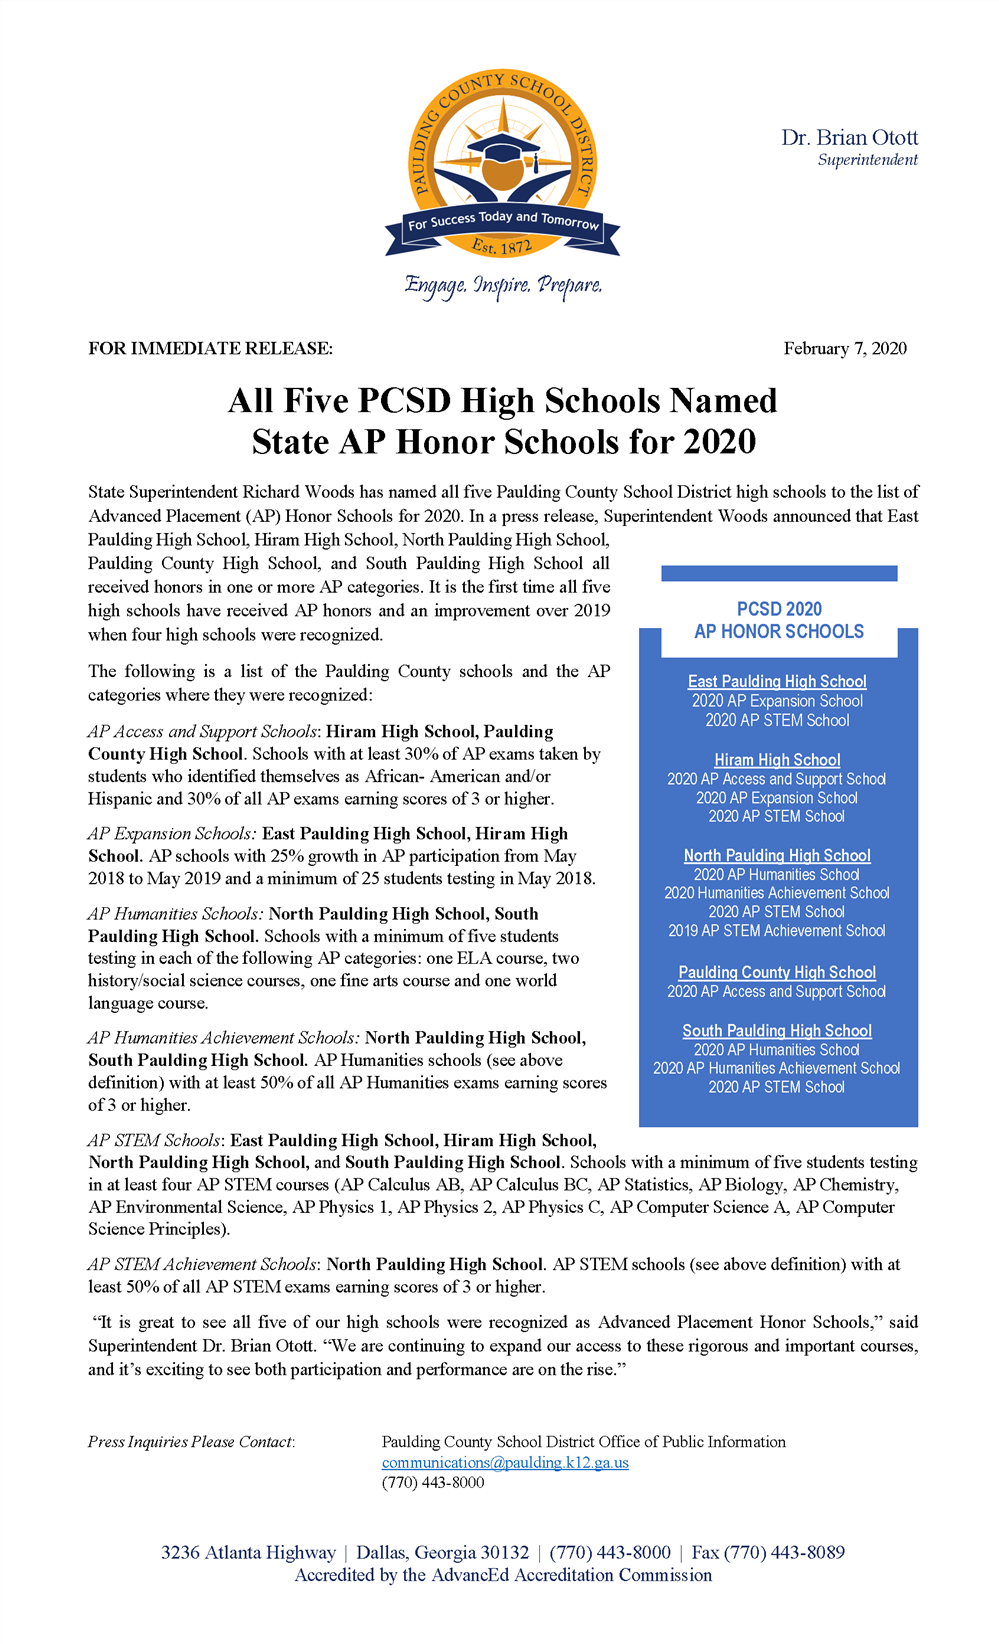 All Five PCSD High Schools Named AP Honor Schools